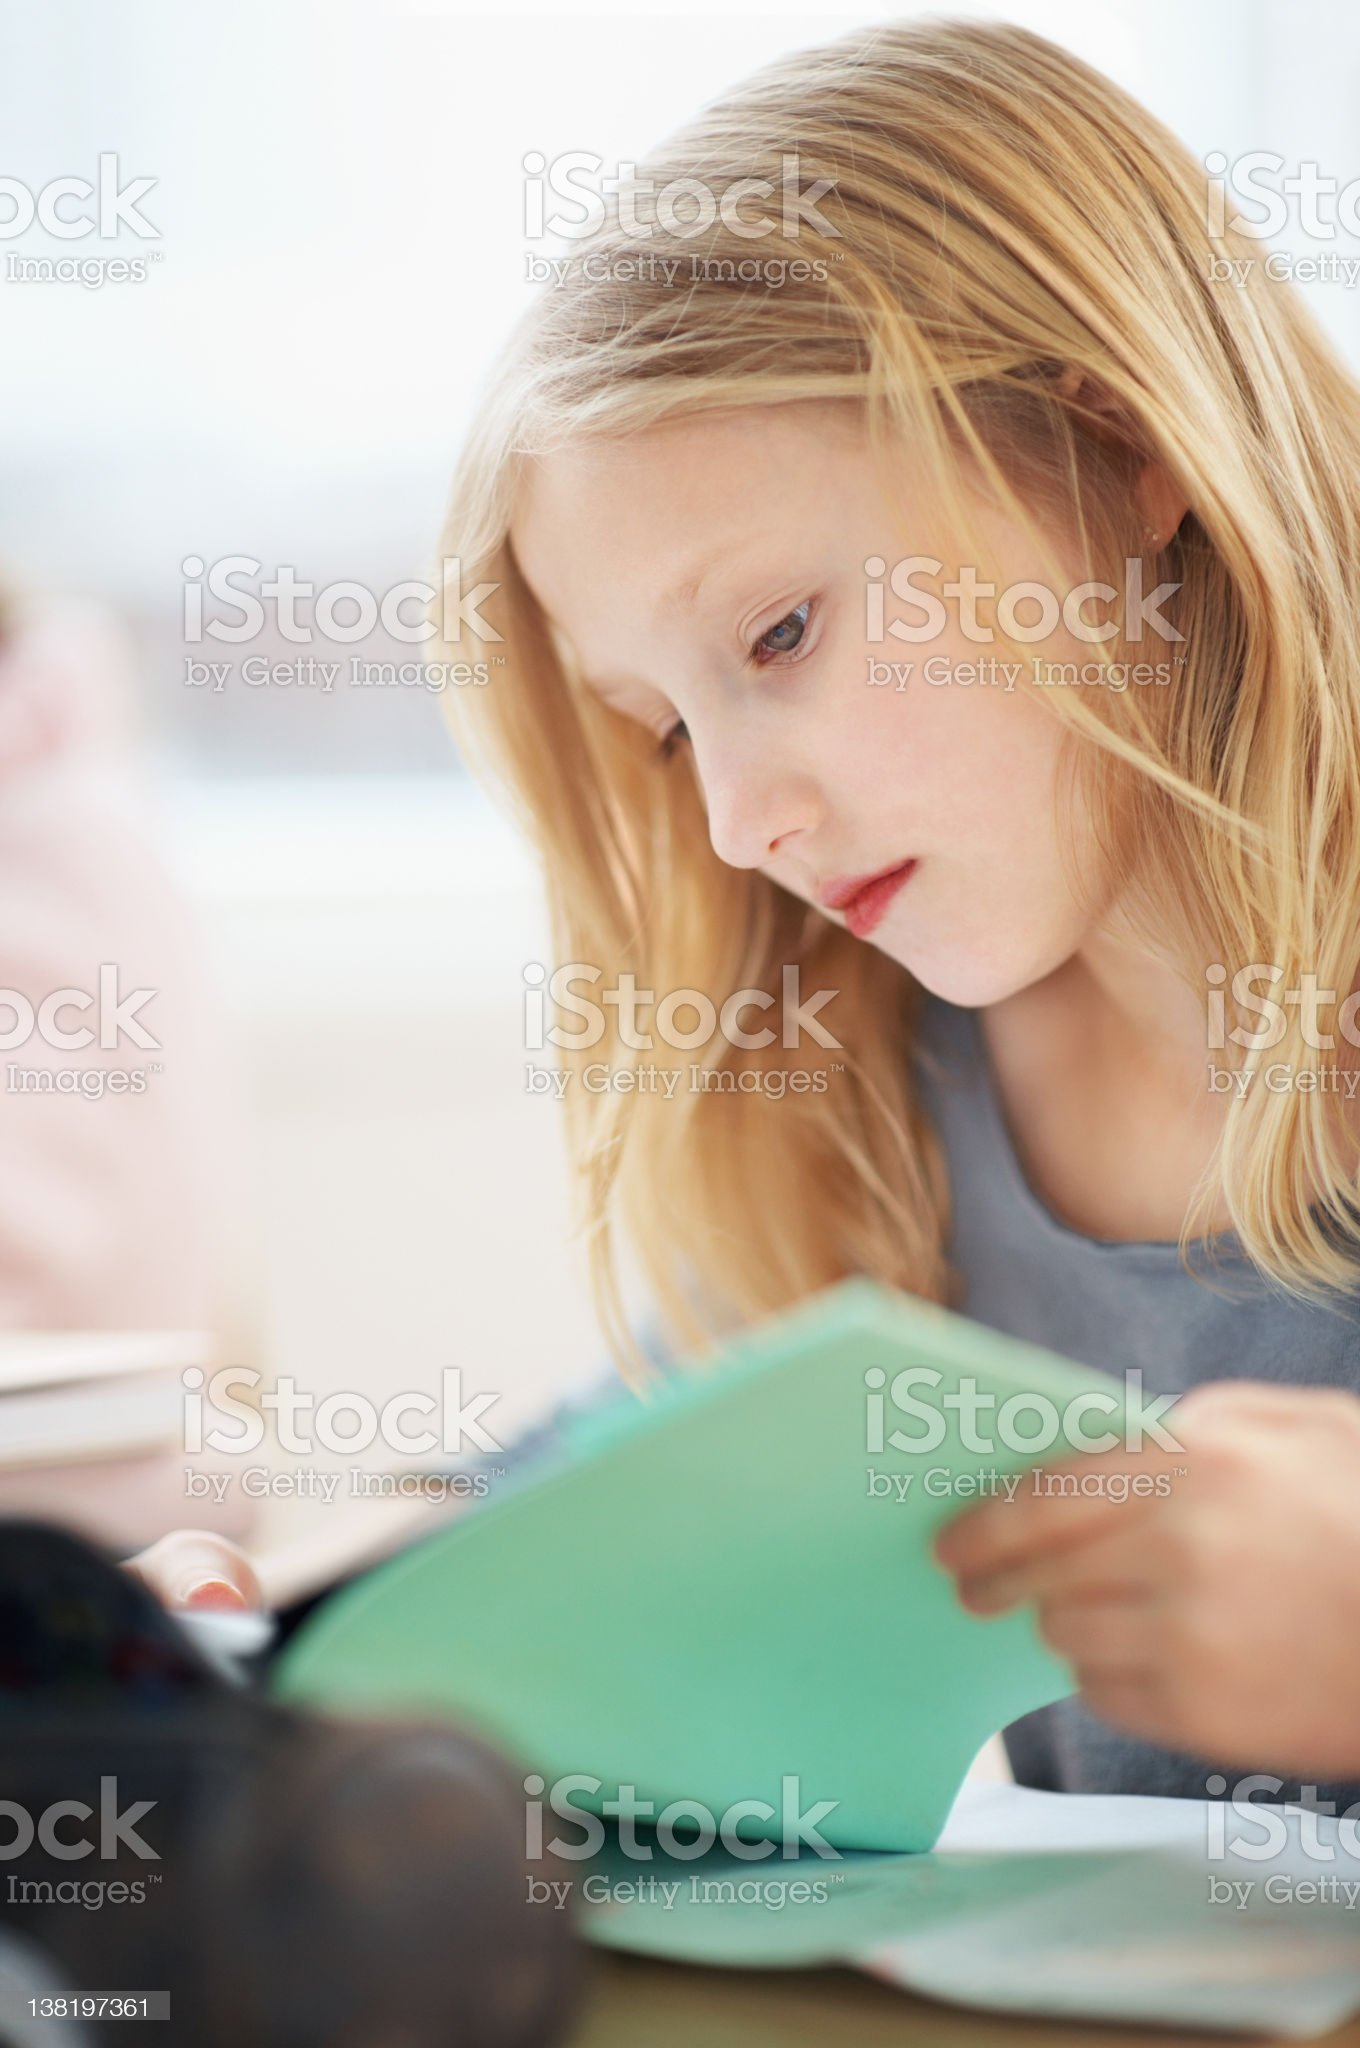 Examinations - School student concentrating on her studies royalty-free stock photo